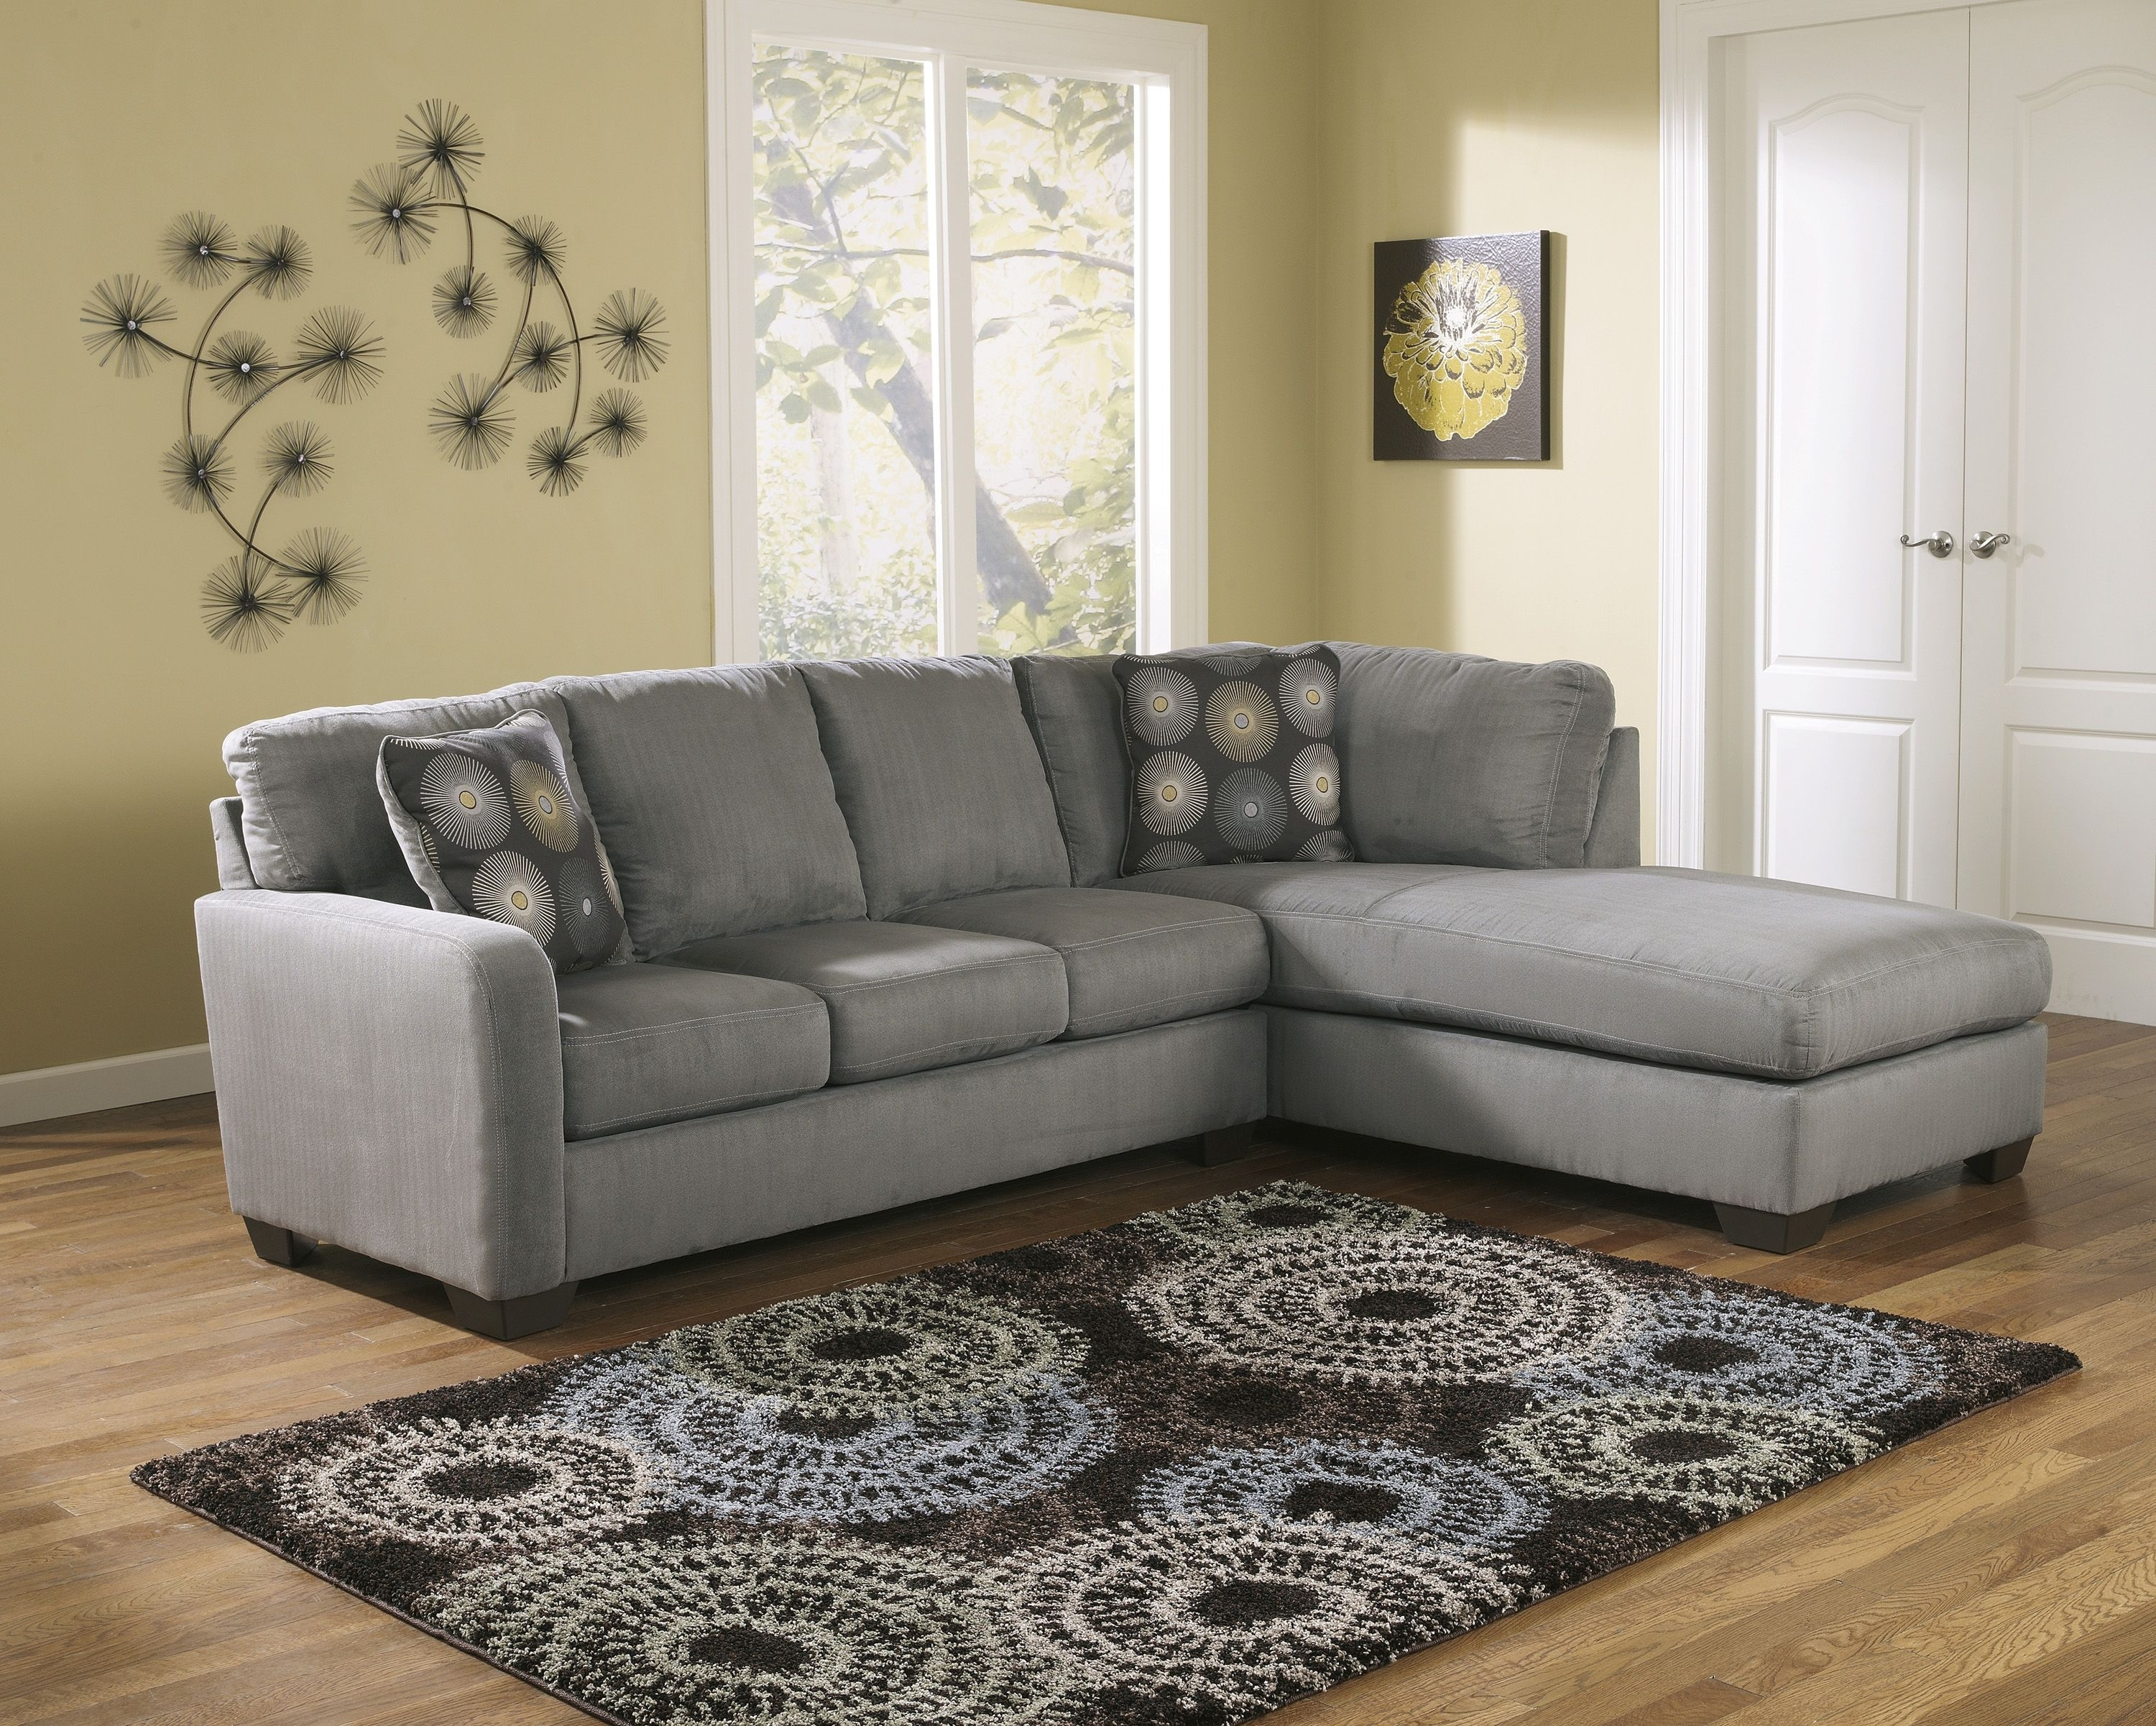 70200Rsfchaisesectionalashley Furniture In Wichita, Ks   Rsf With Wichita Ks Sectional Sofas (Photo 2 of 10)